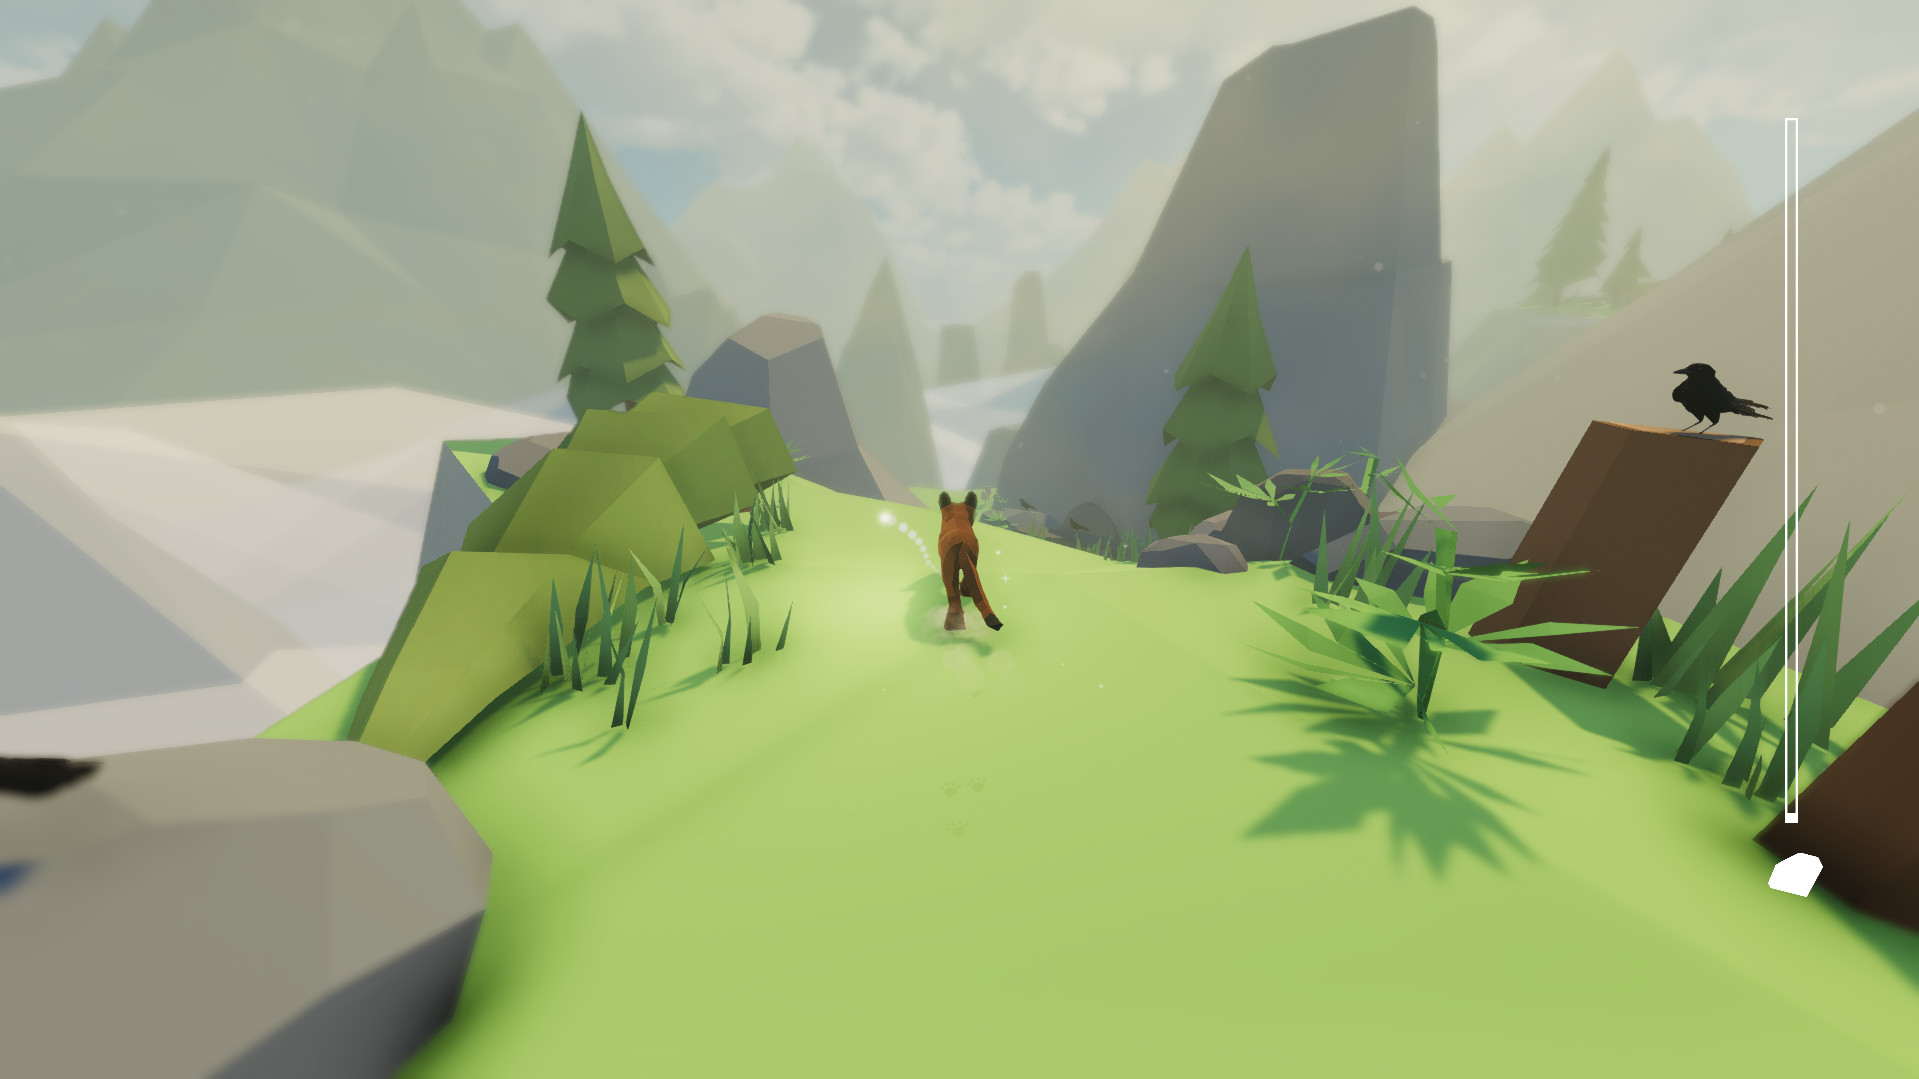 The Long Return is like The Witness but cuter and nicer